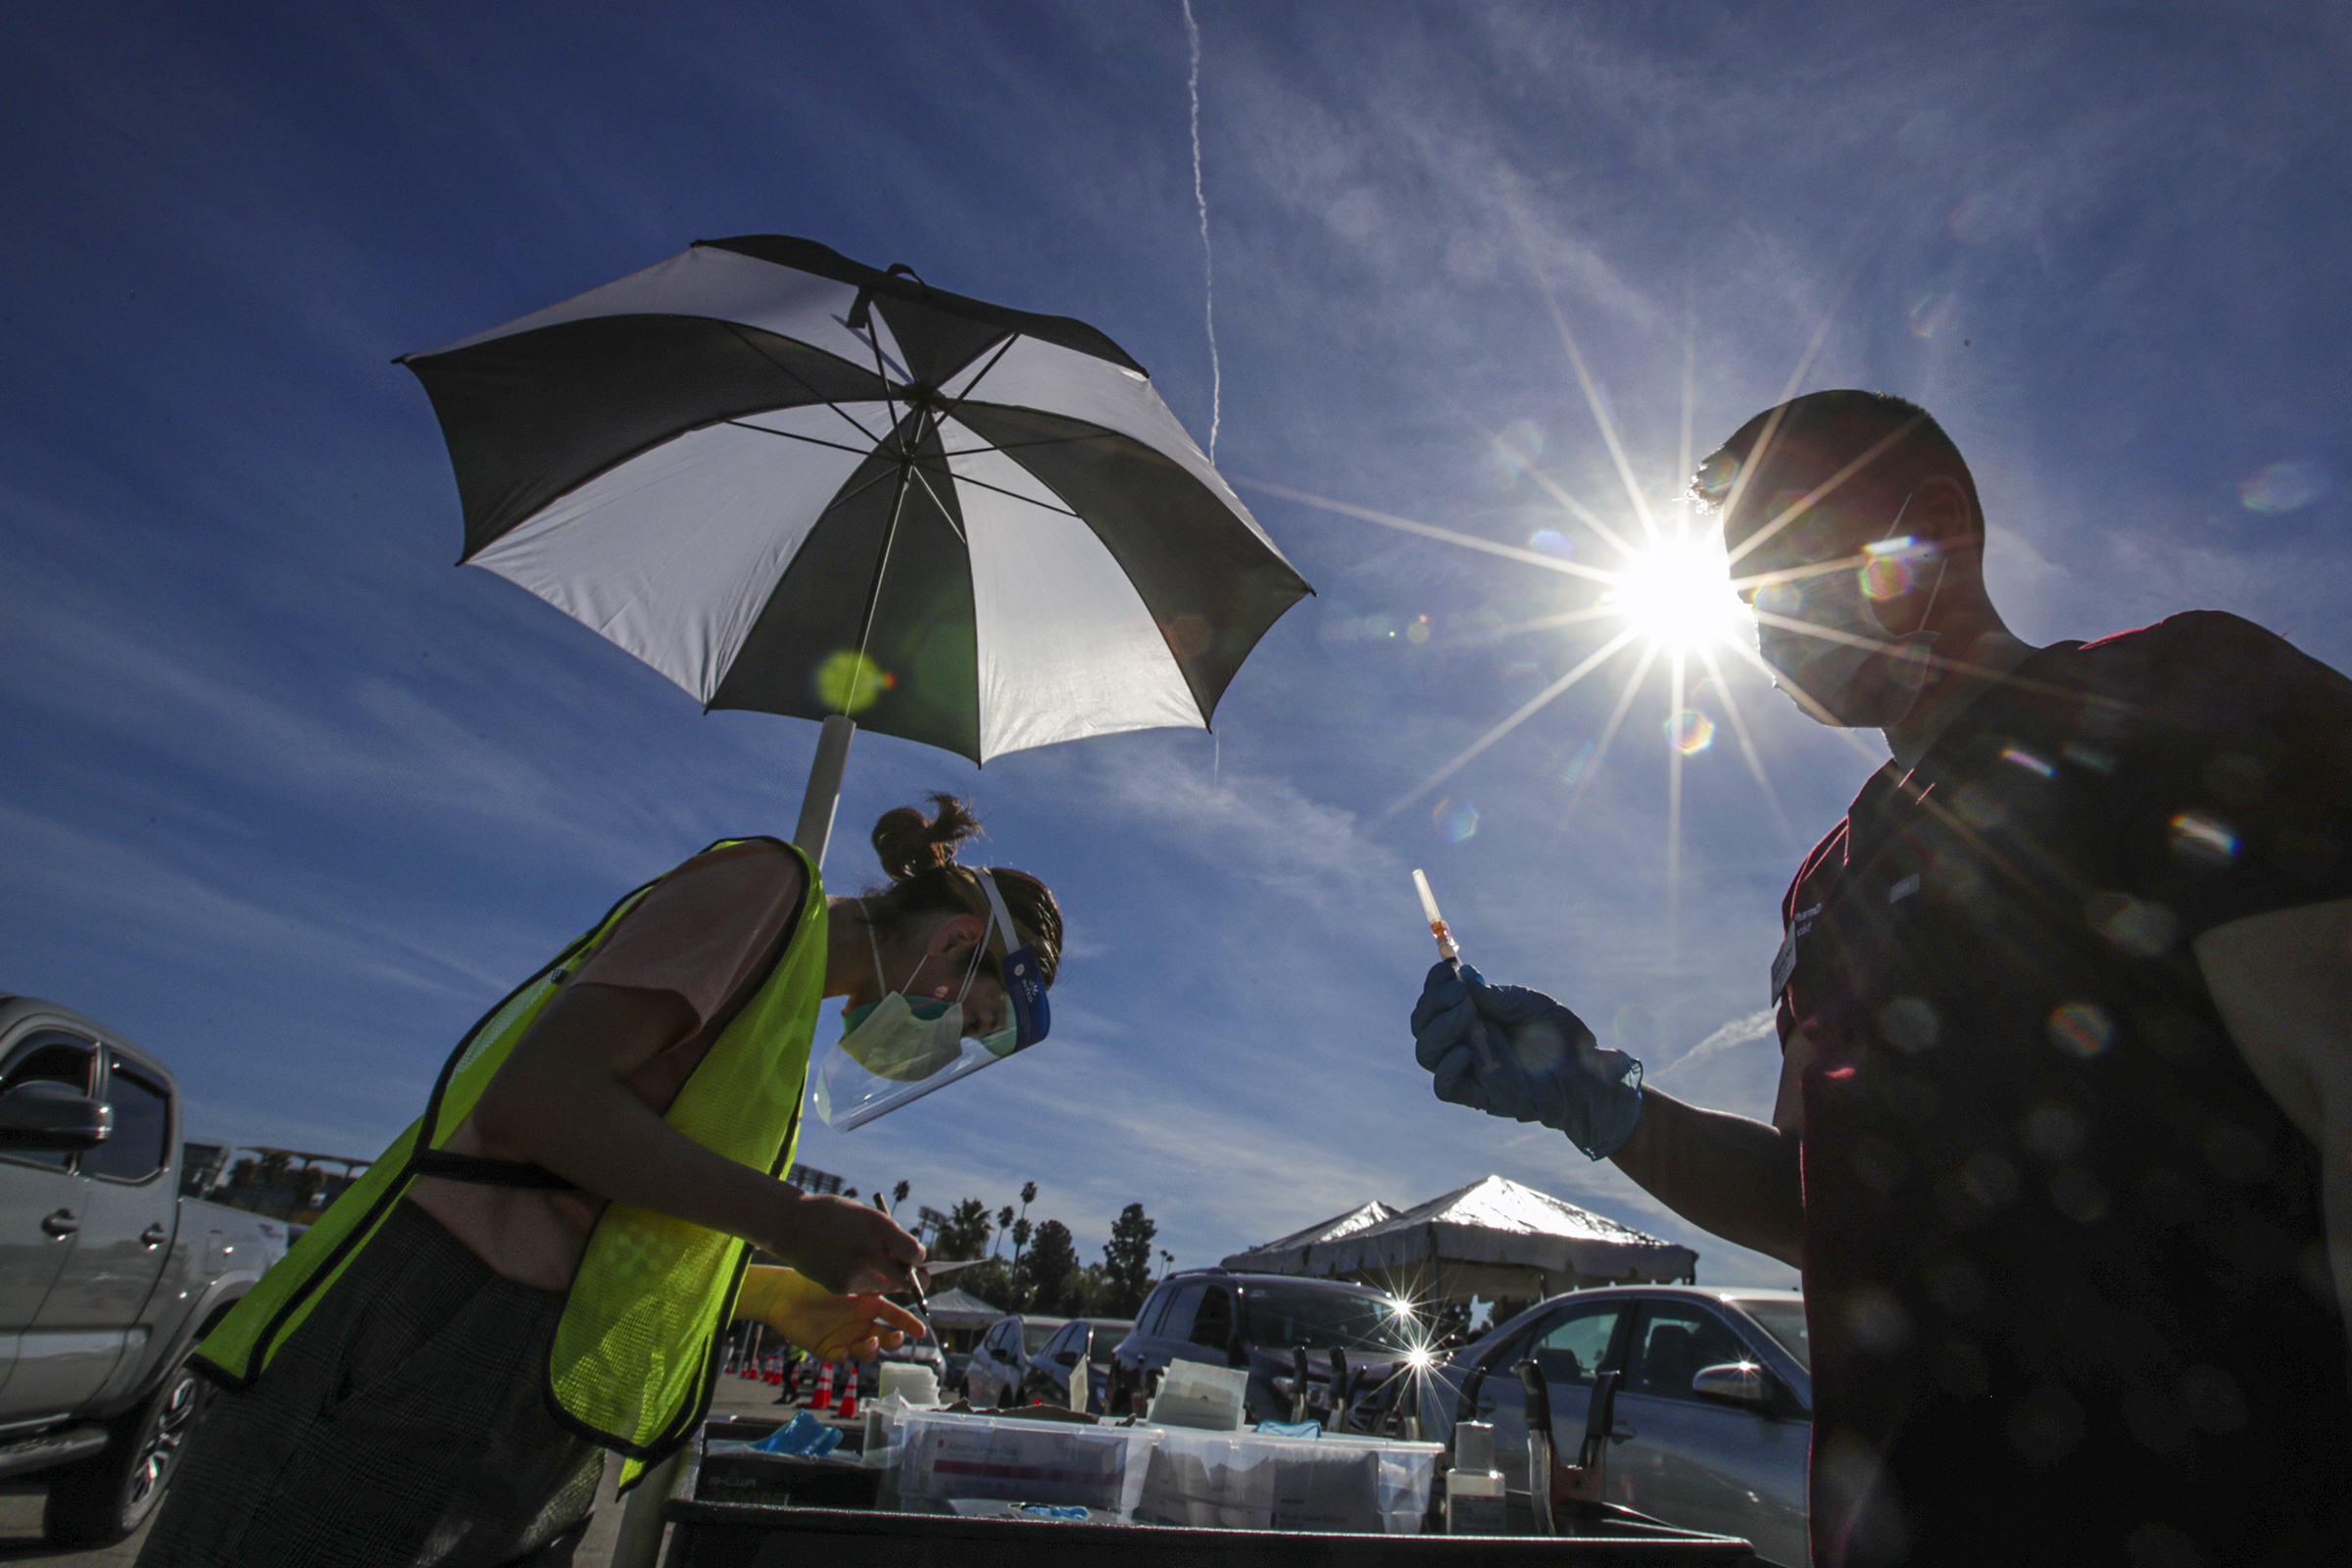 Anti-vaccine protesters at Dodger Stadium could face arrest if they interrupt lines again